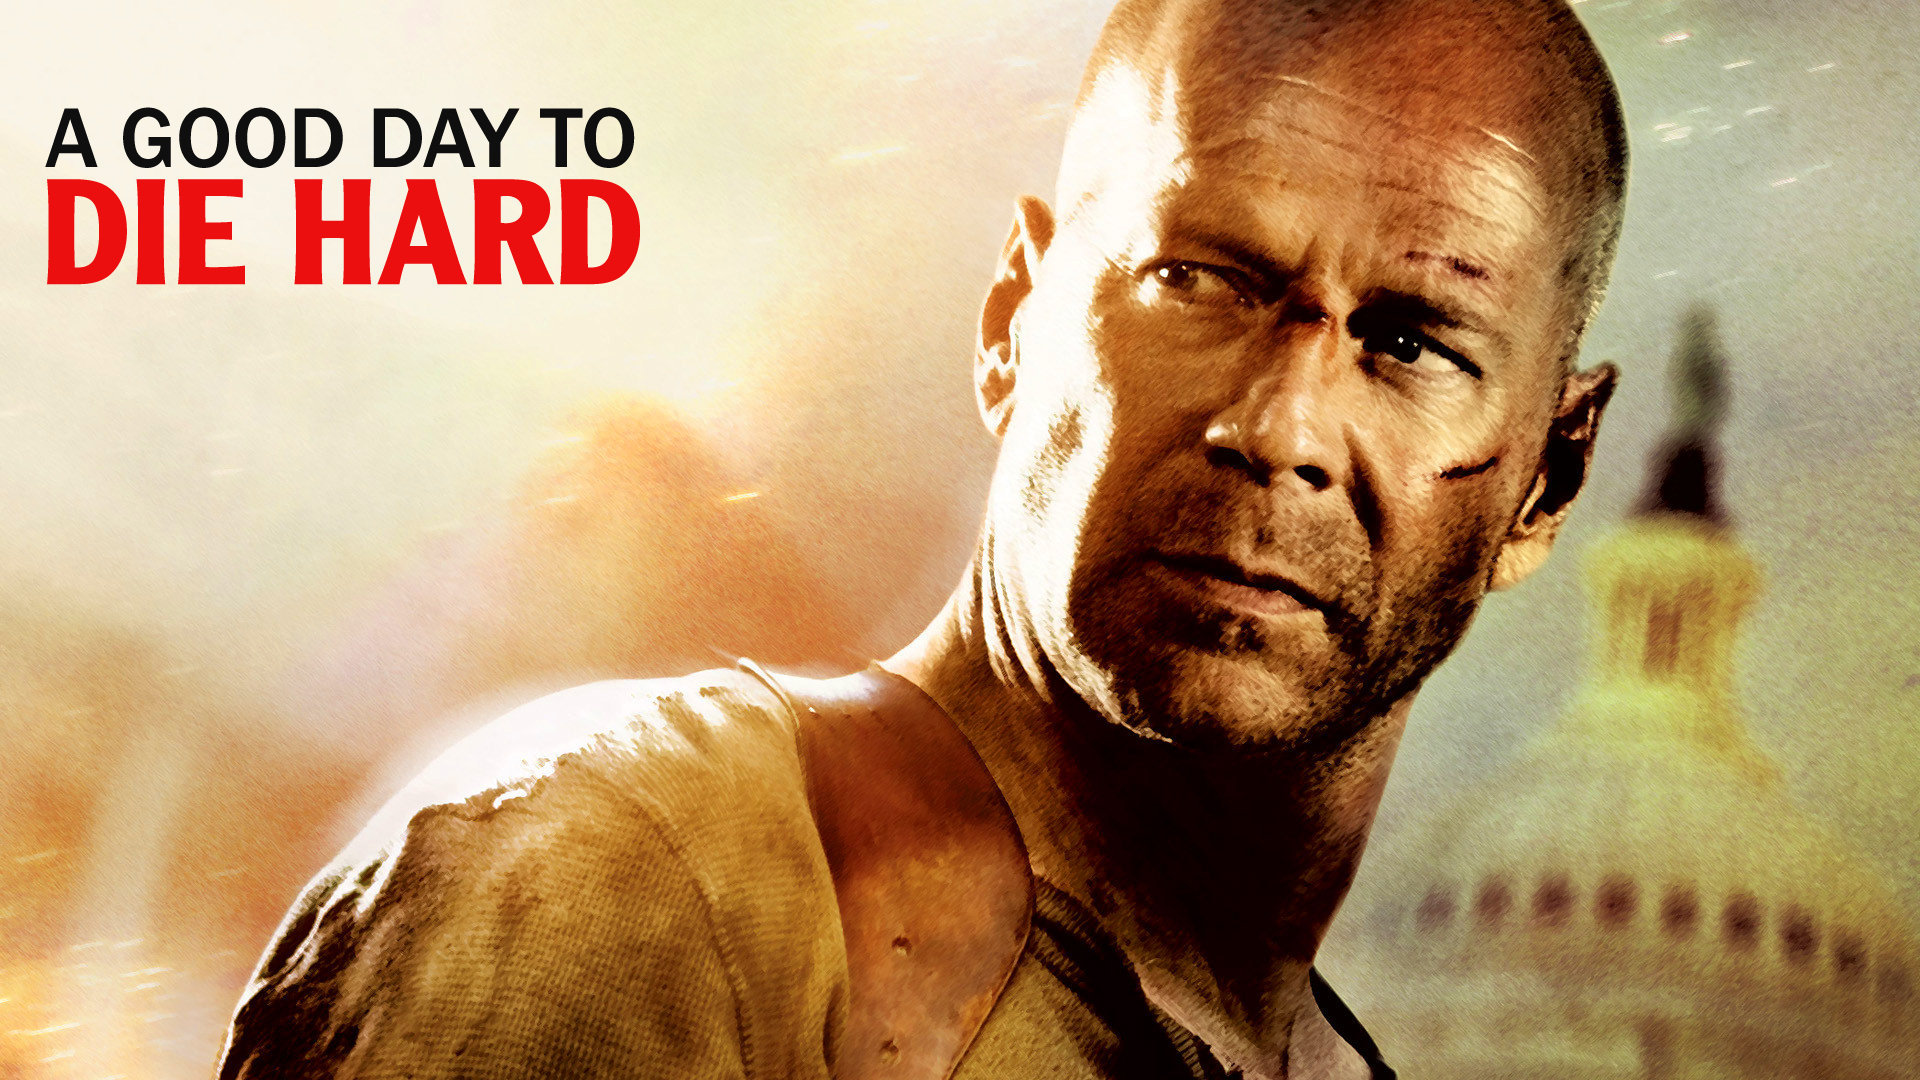 http://zinemaniacos.files.wordpress.com/2013/05/a-good-day-to-die-hard-bruce-willis-wallpaper.jpg